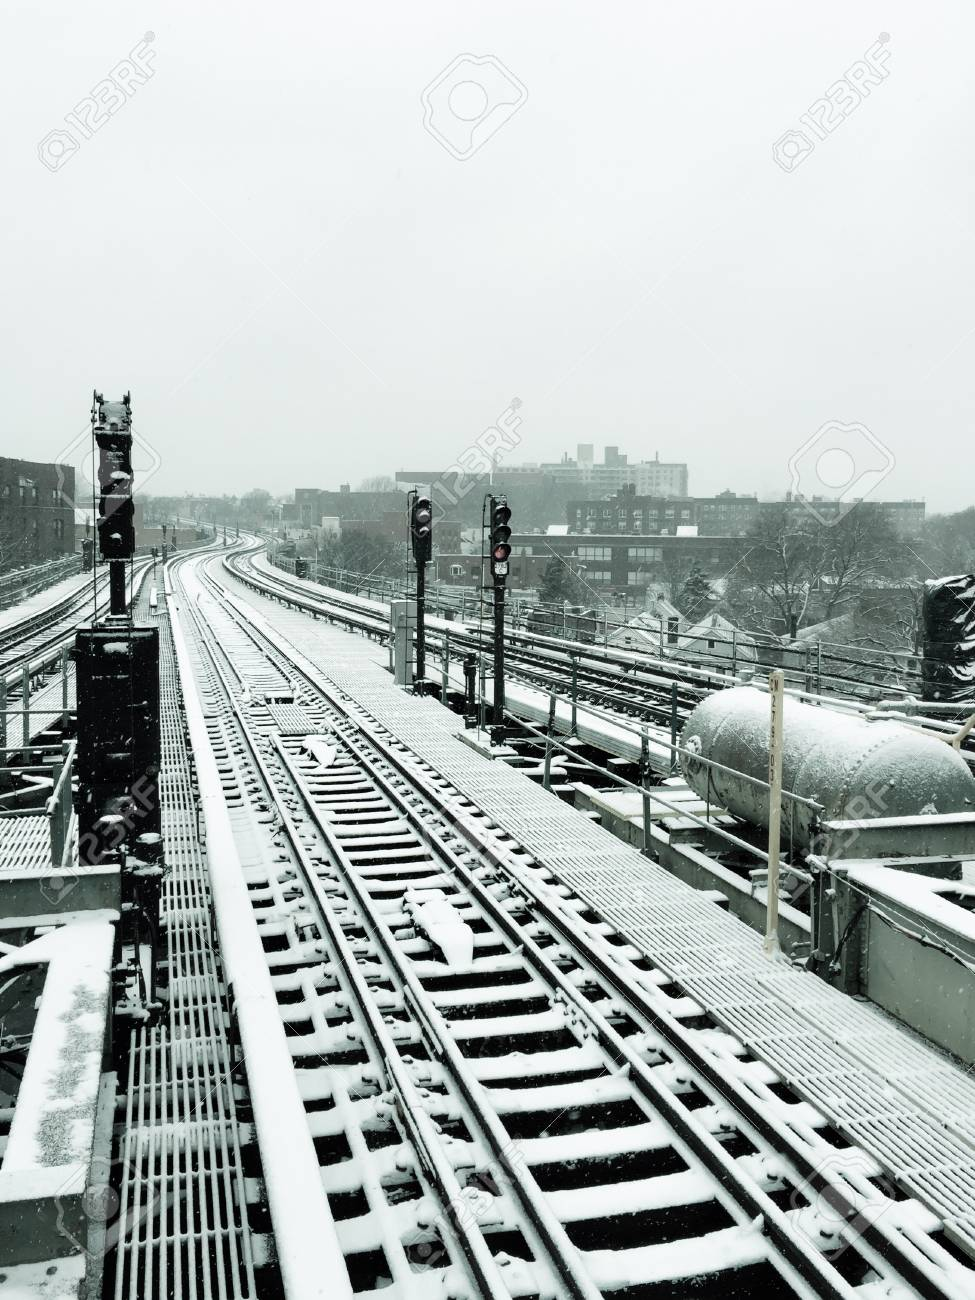 Railway With Snow In Vintage Style At 61st Woodside Subway Station Platform New